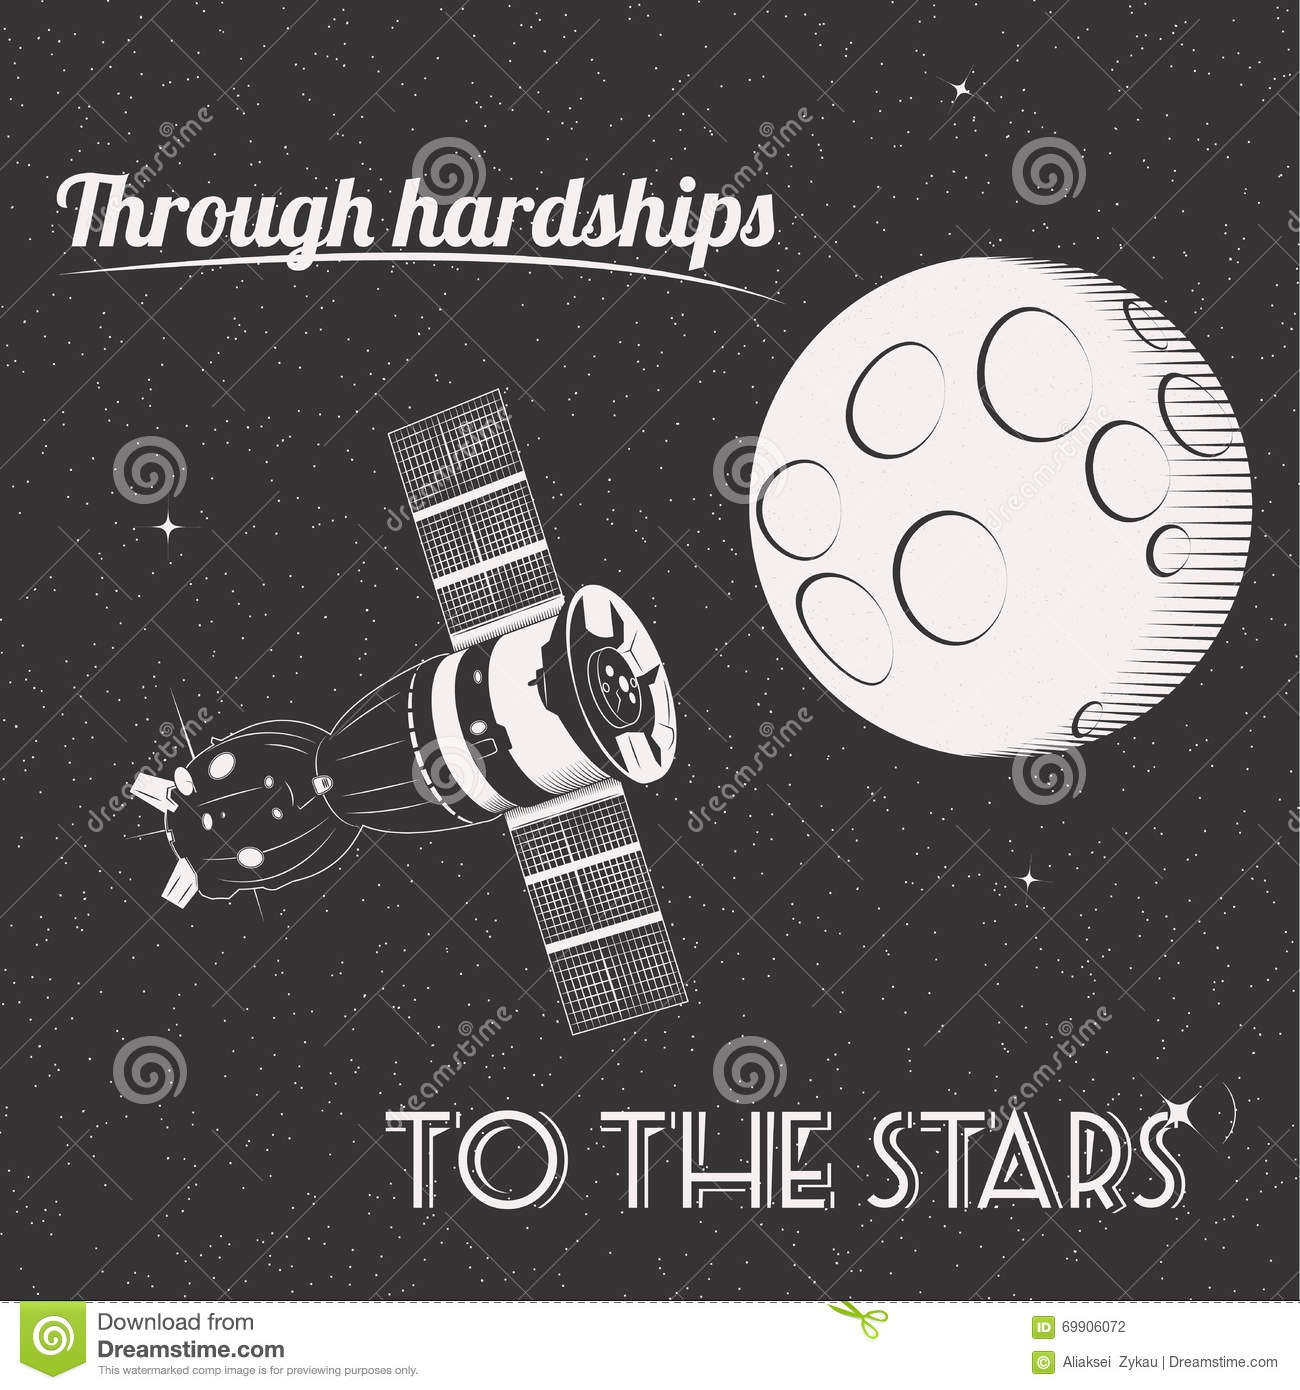 Through hardships to the stars print i